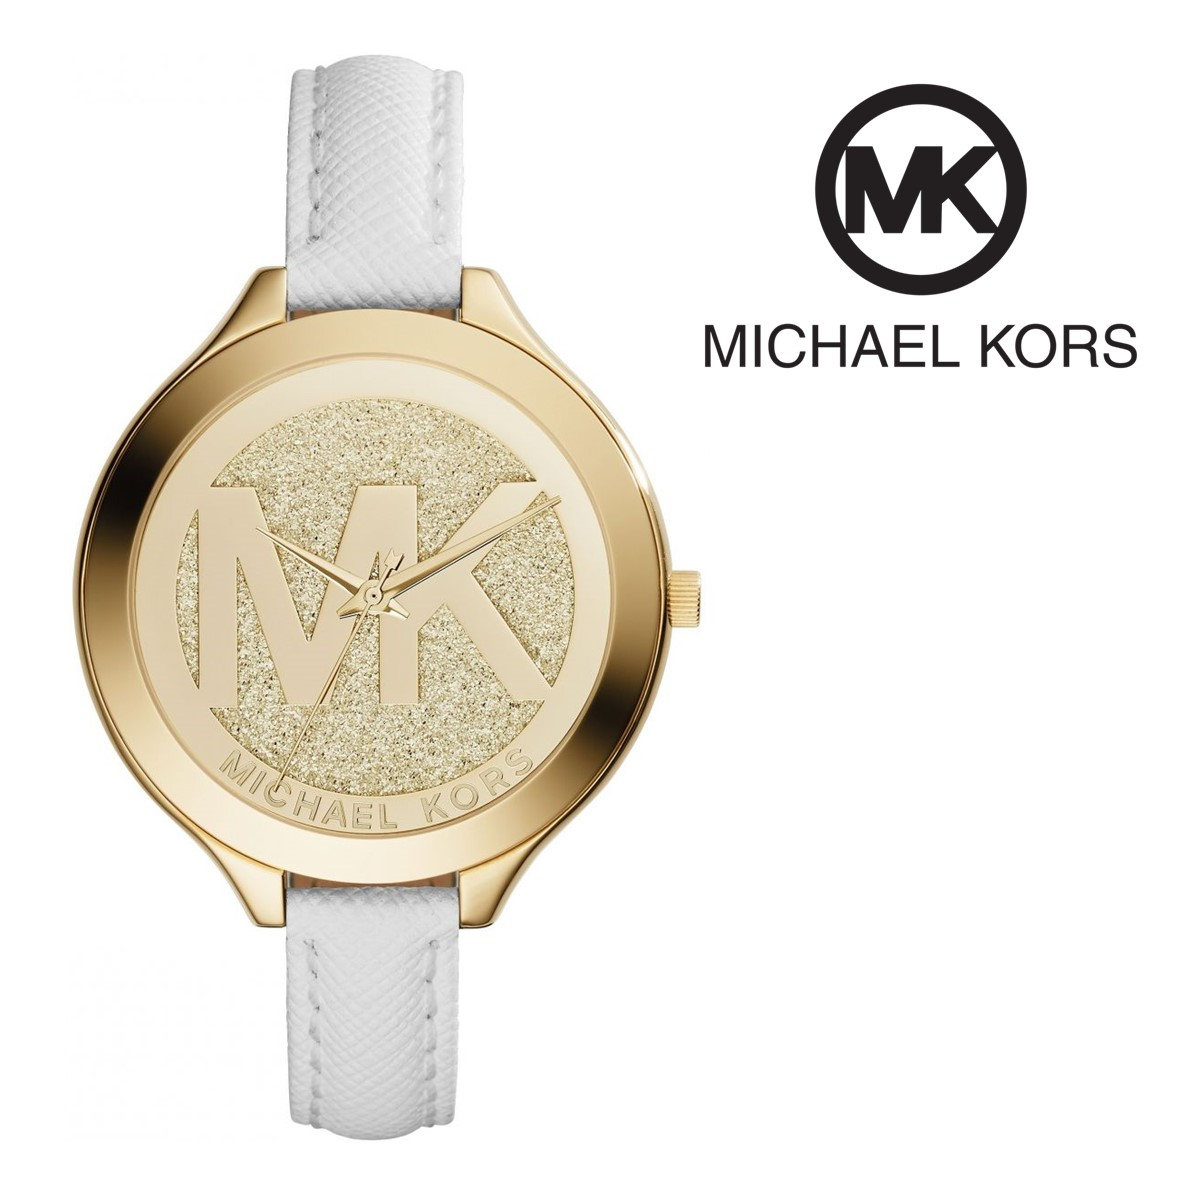 da40842c31a Relógio Michael Kors® MK2389 - You Like It